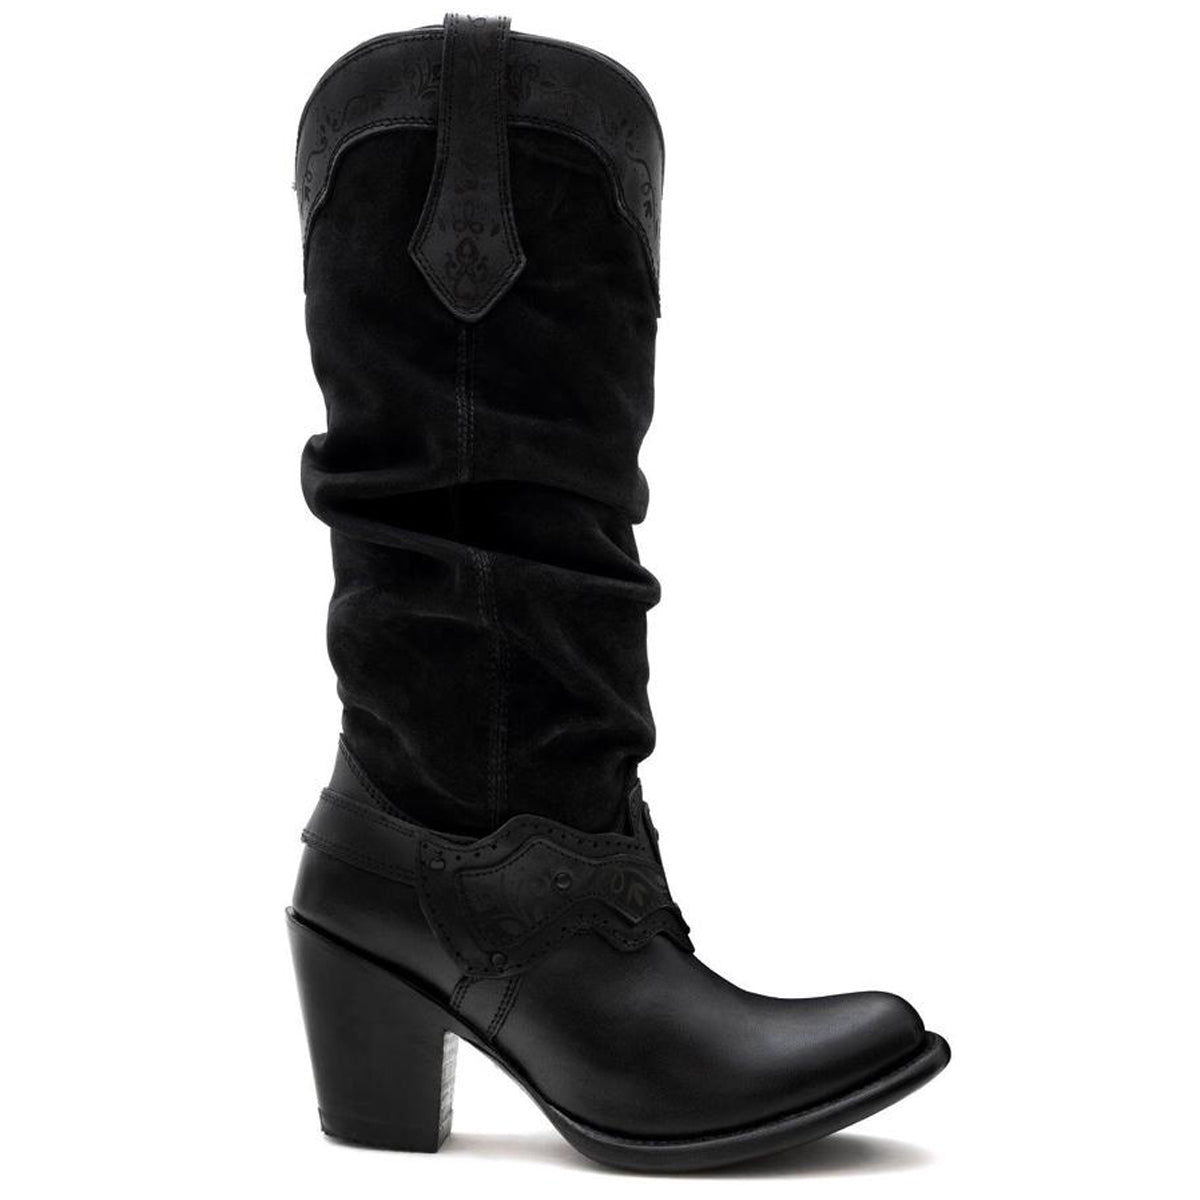 Sonora Black - High Boot